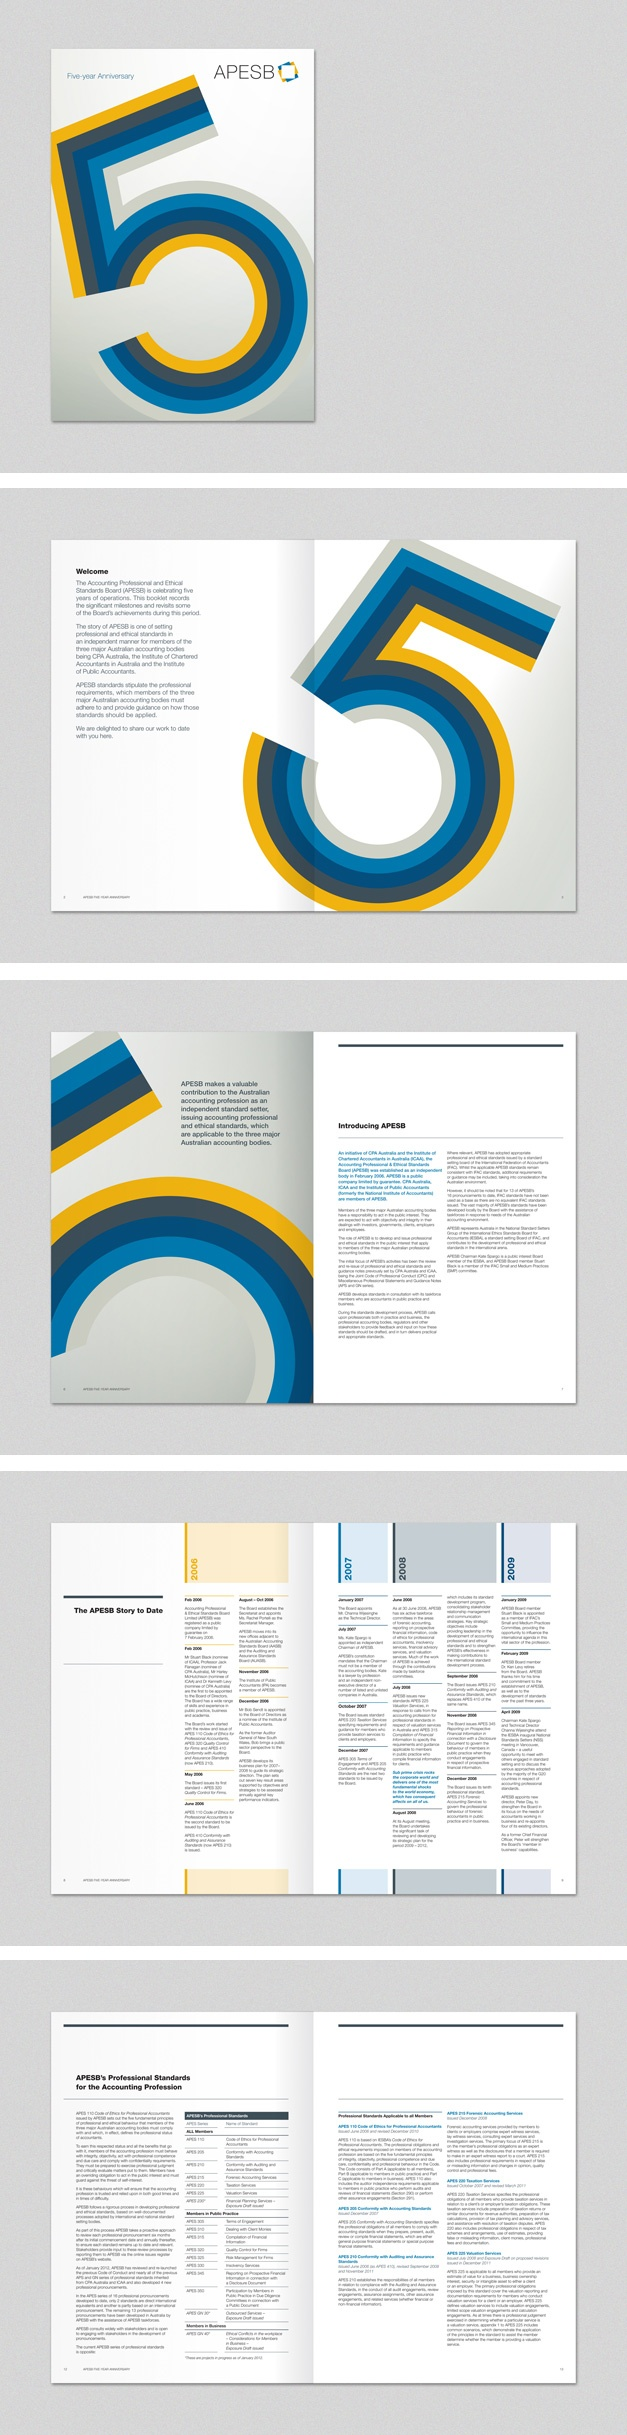 APESB 5 year anniversary brochure. www.fenton.com.au #communication #PR #branding #graphicdesign